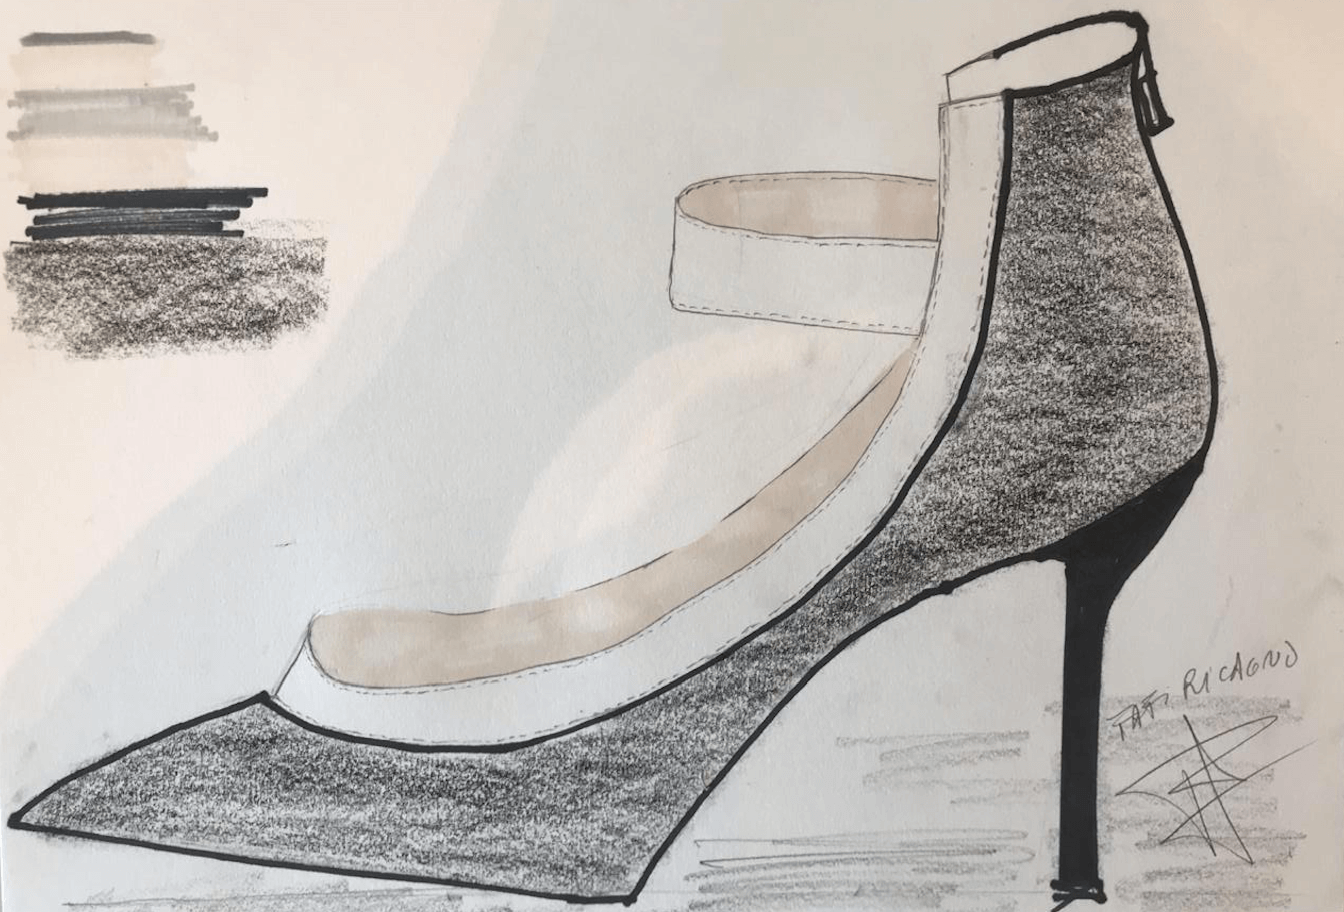 Sketch Ninon Boot - Ricagno